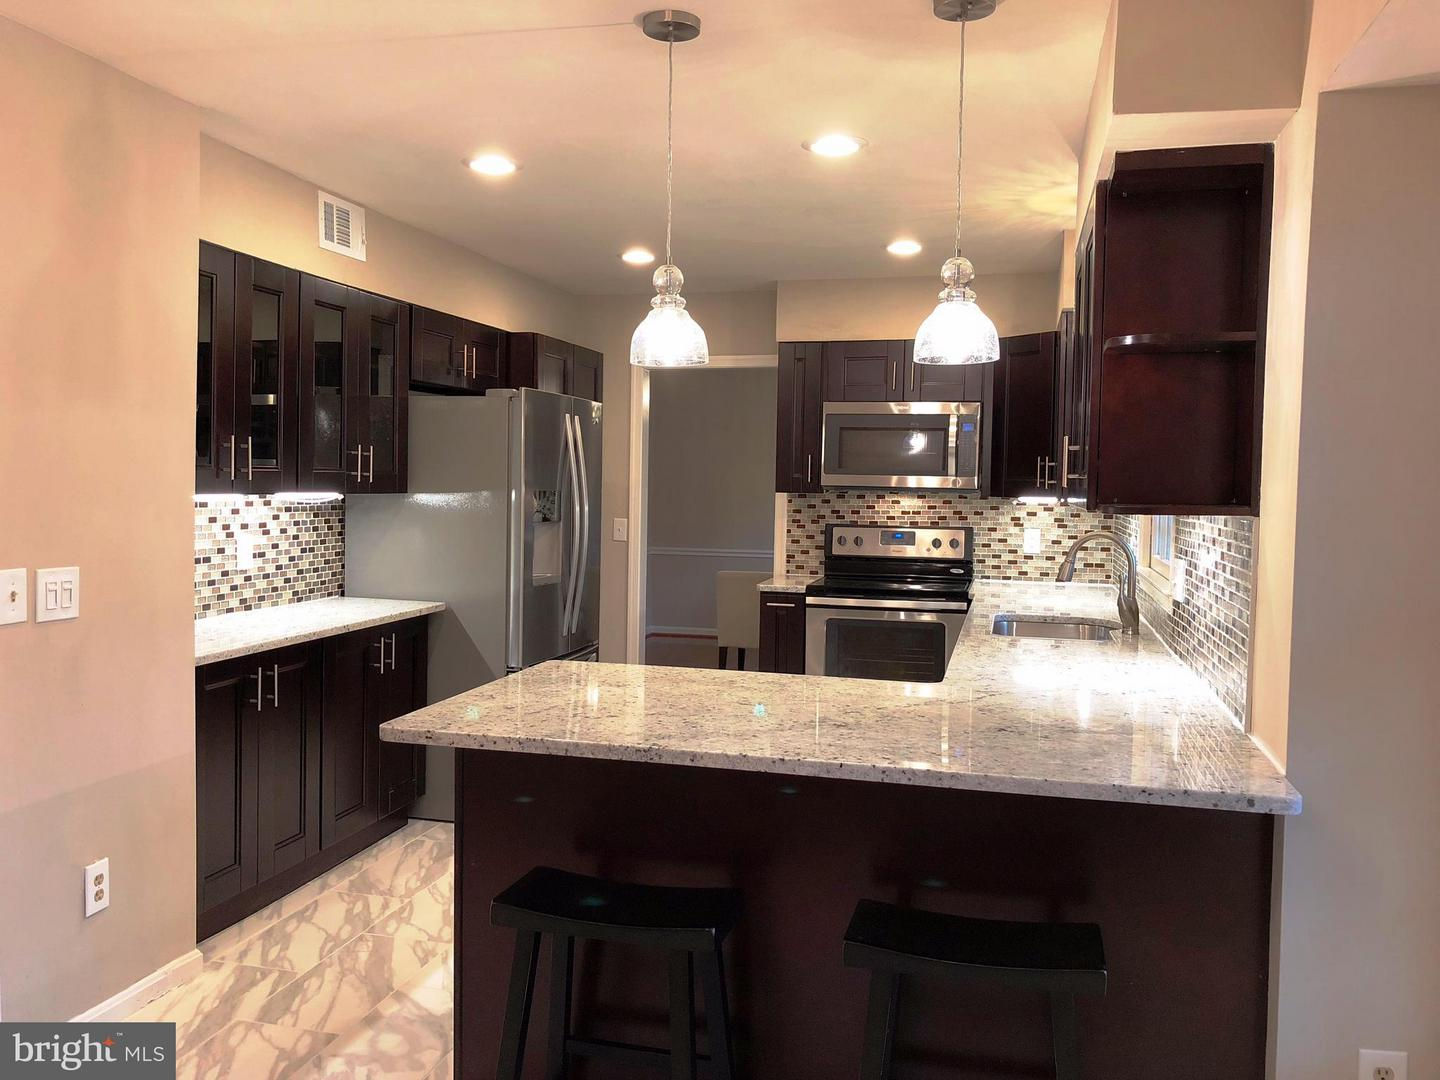 Property for Rent at Potomac, Maryland 20854 United States